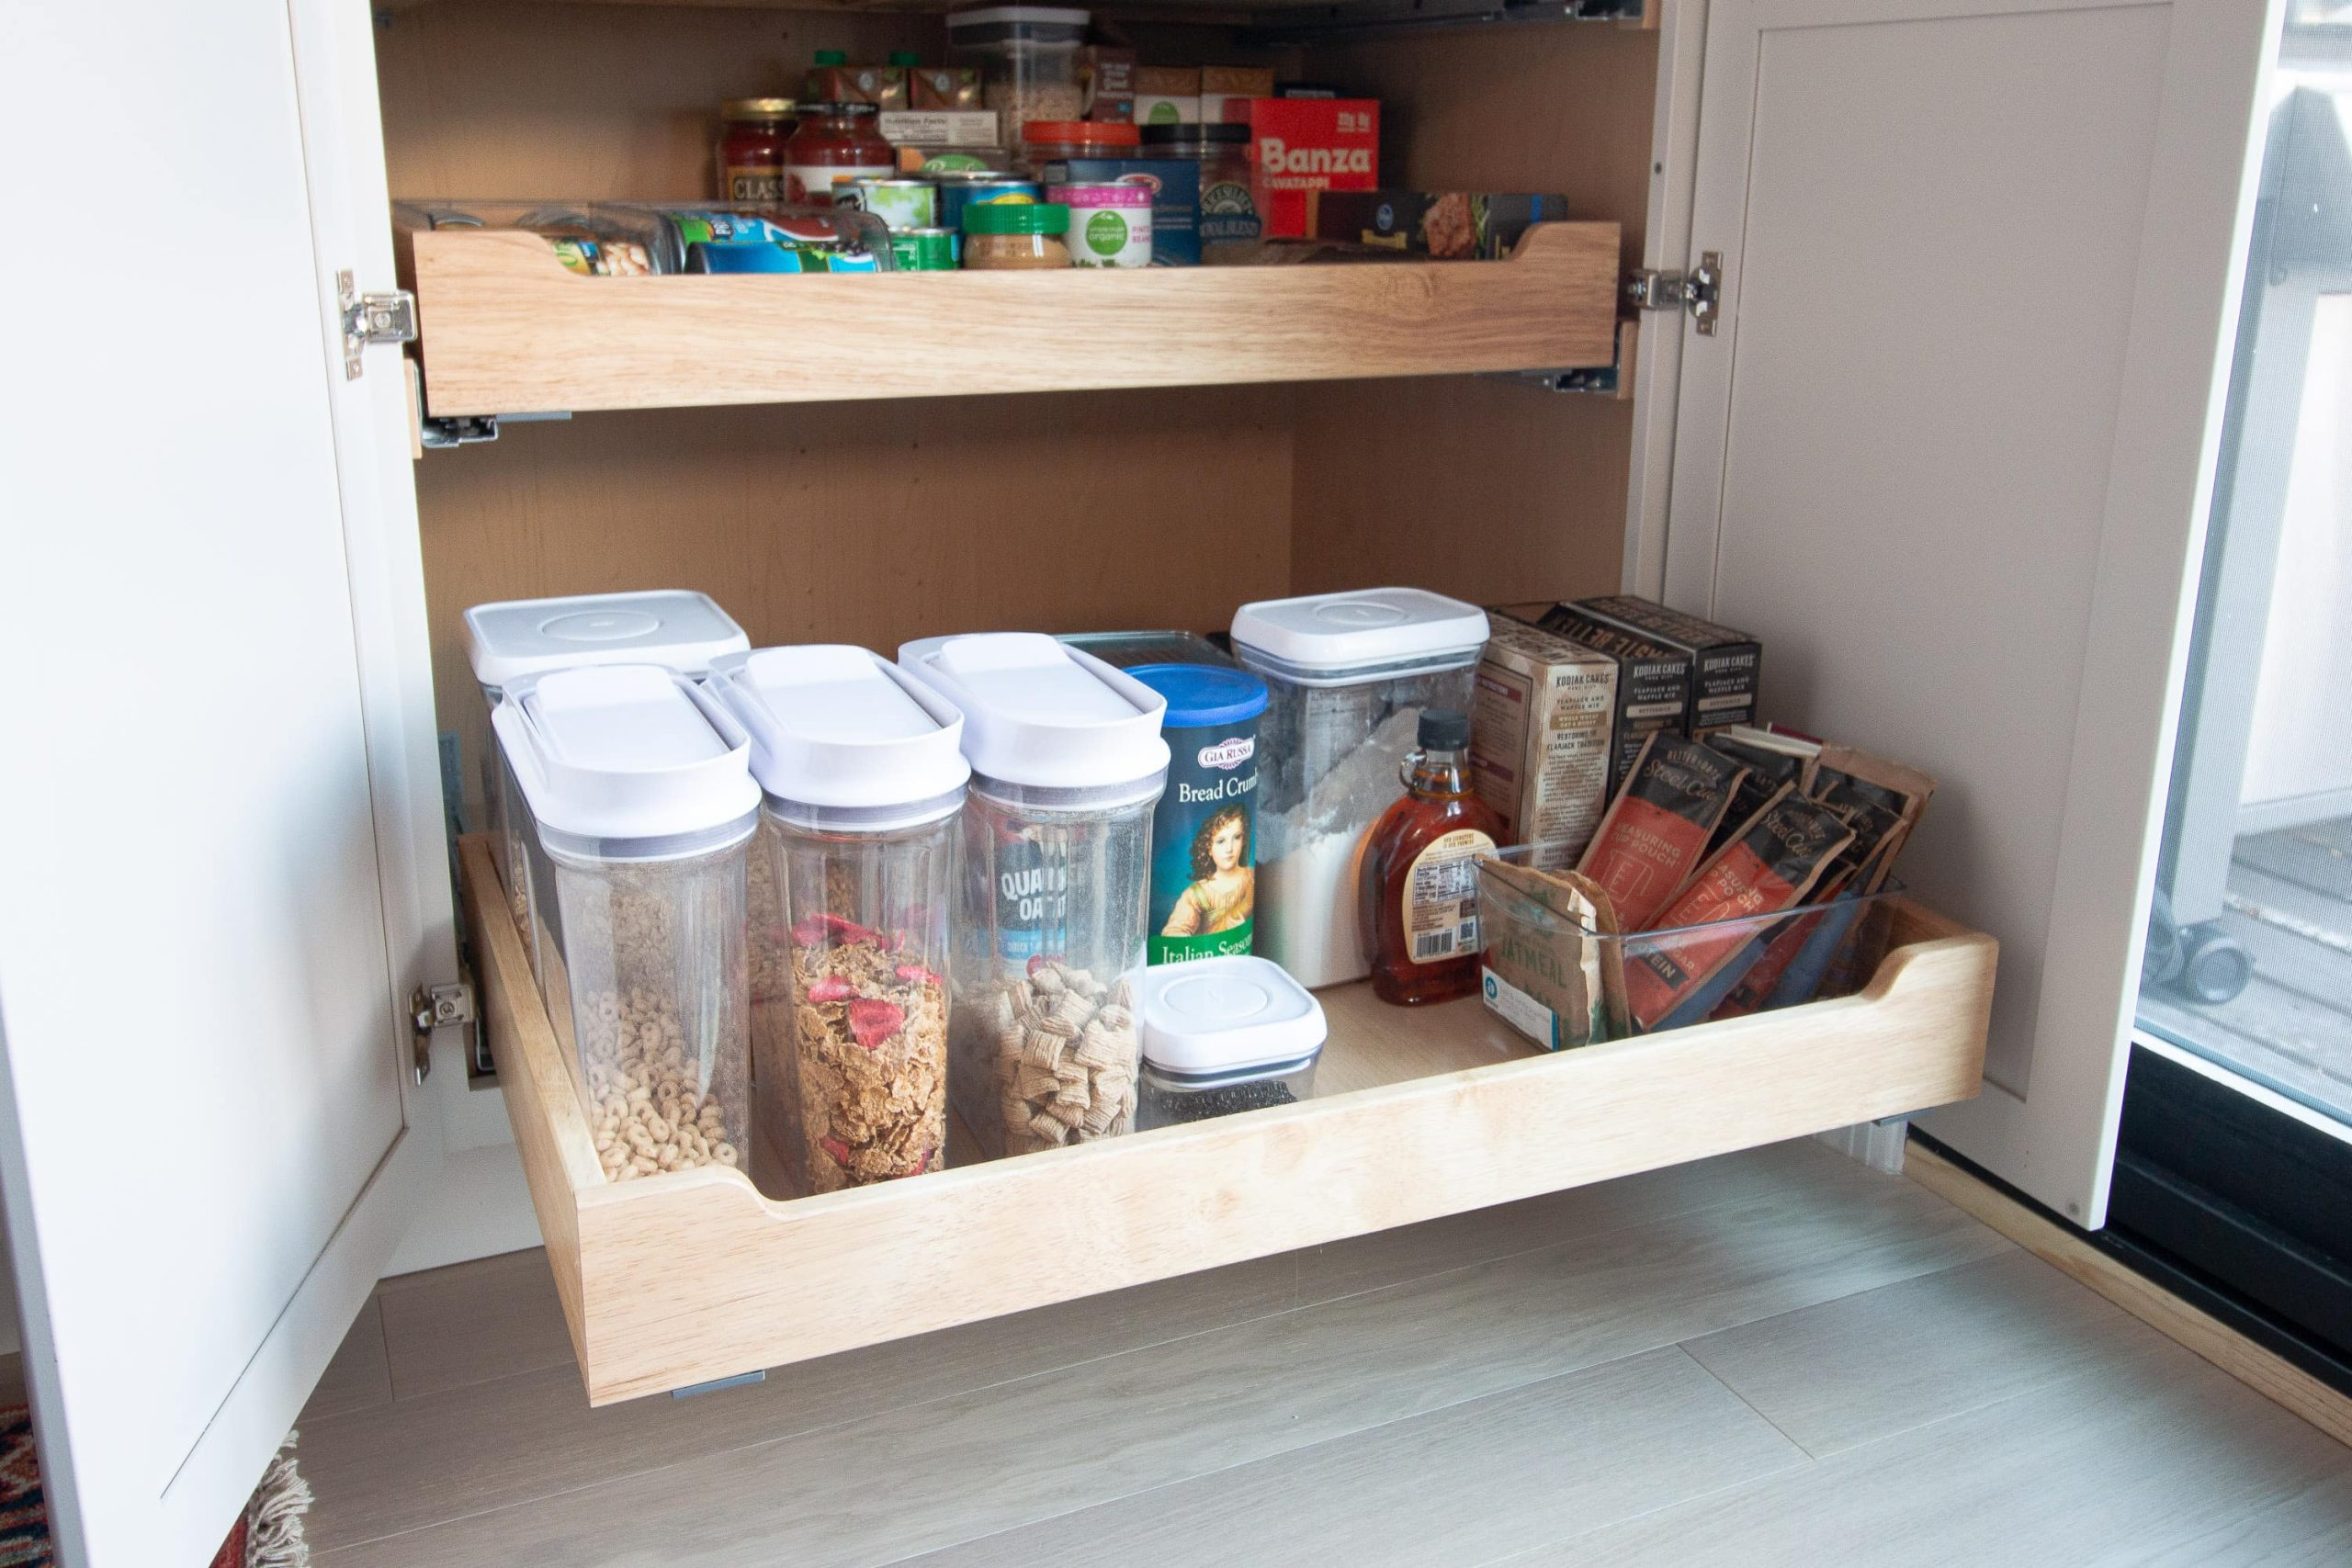 Our favorite items to organize a pantry